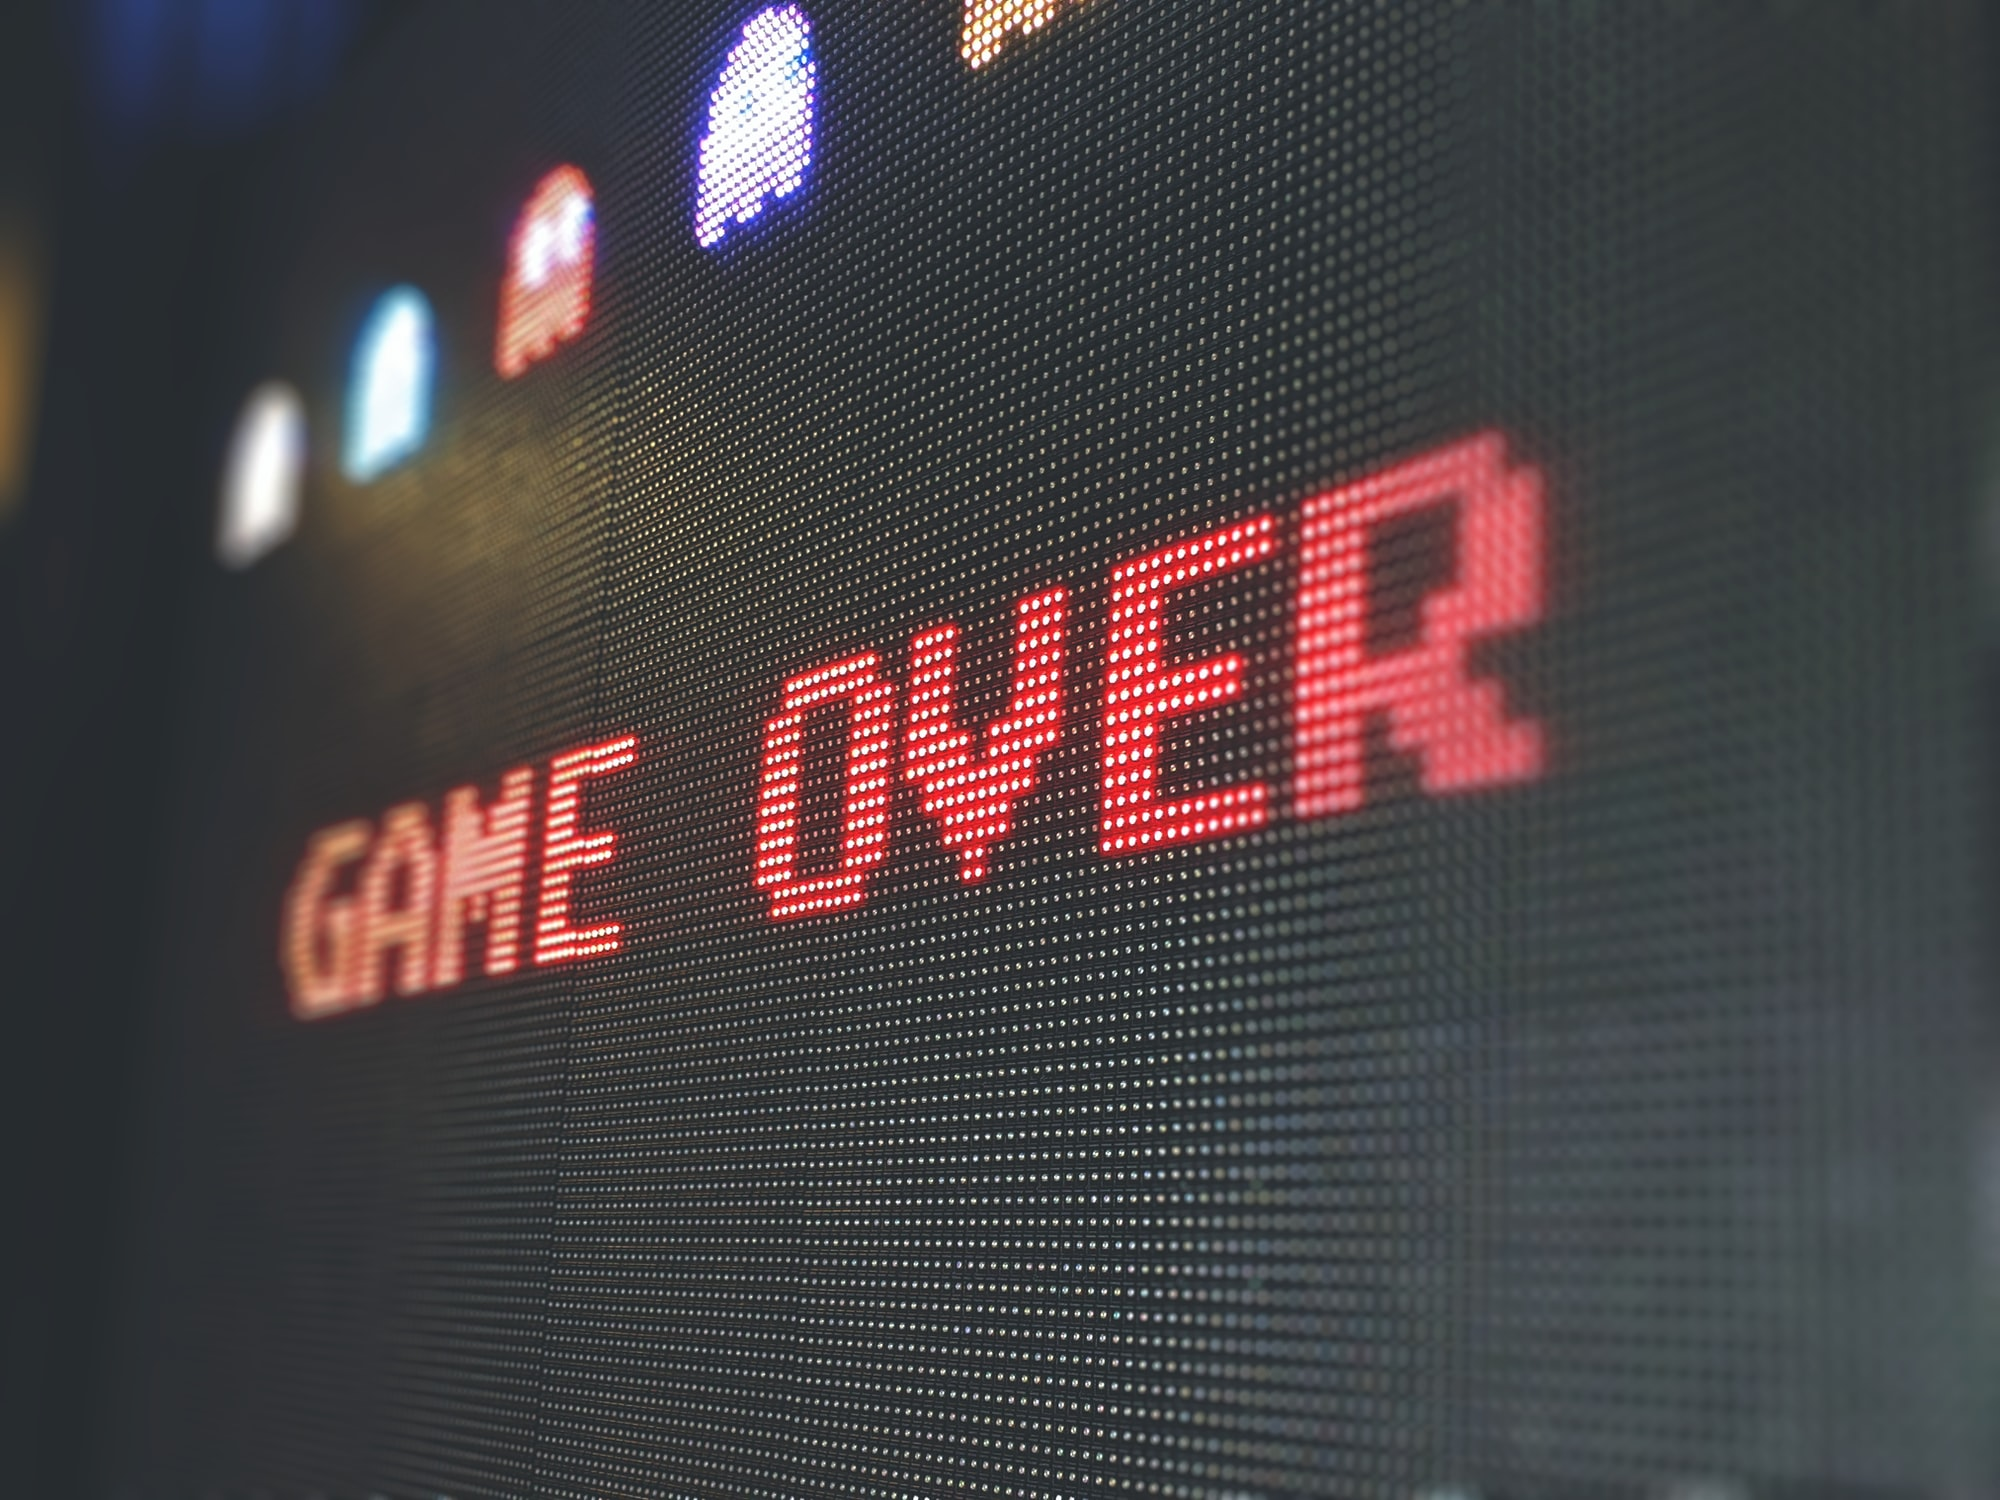 Pixelated Game Over screen on an oversized PAC-MAN arcade machine